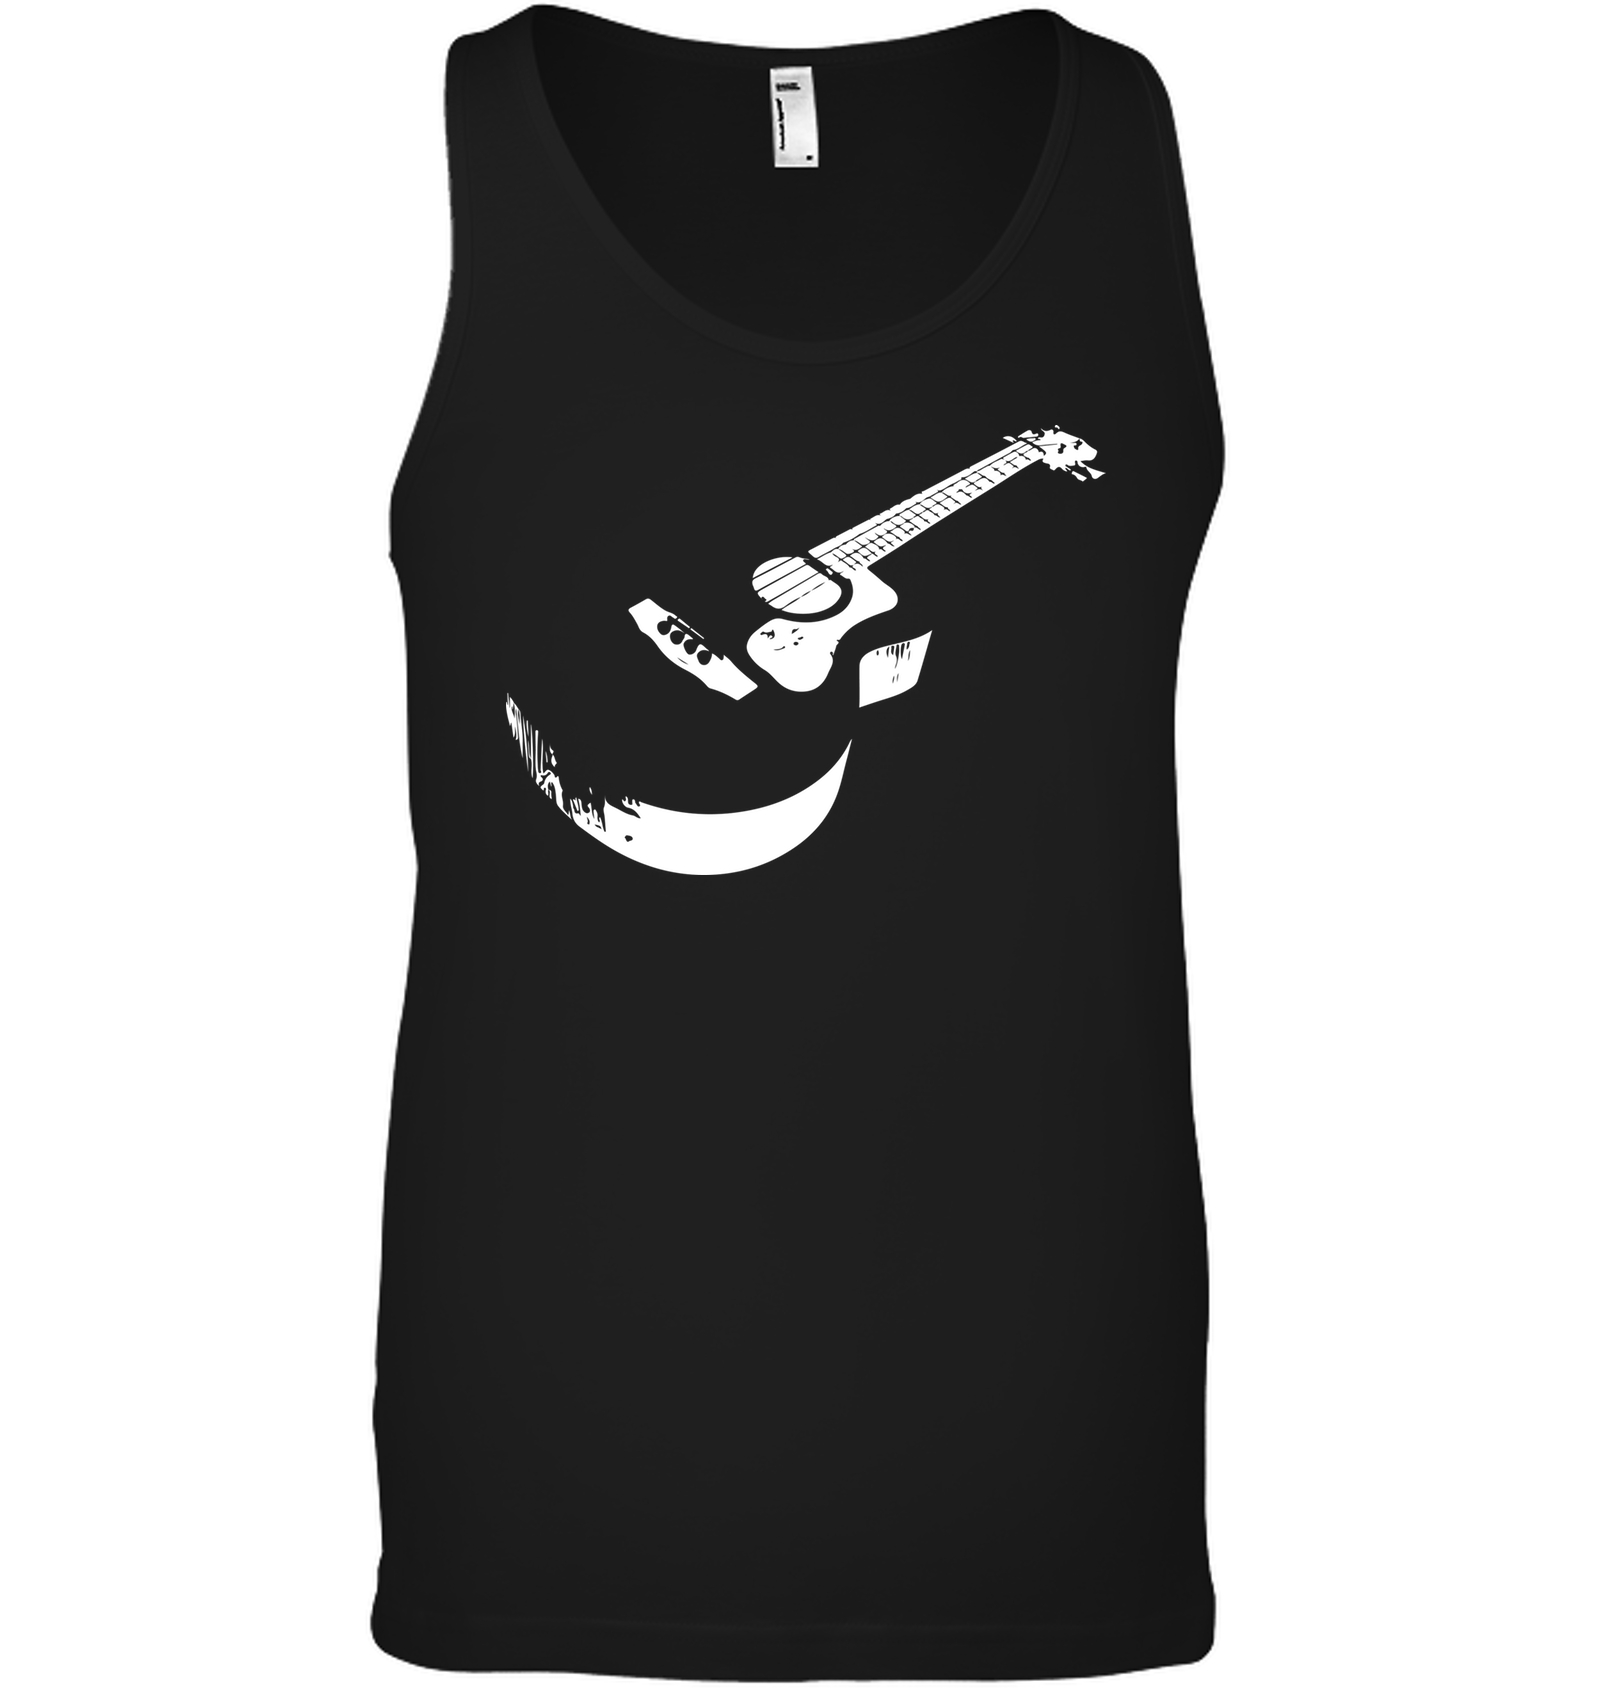 Cool white acoustic guitar - Bella + Canvas Unisex Jersey Tank